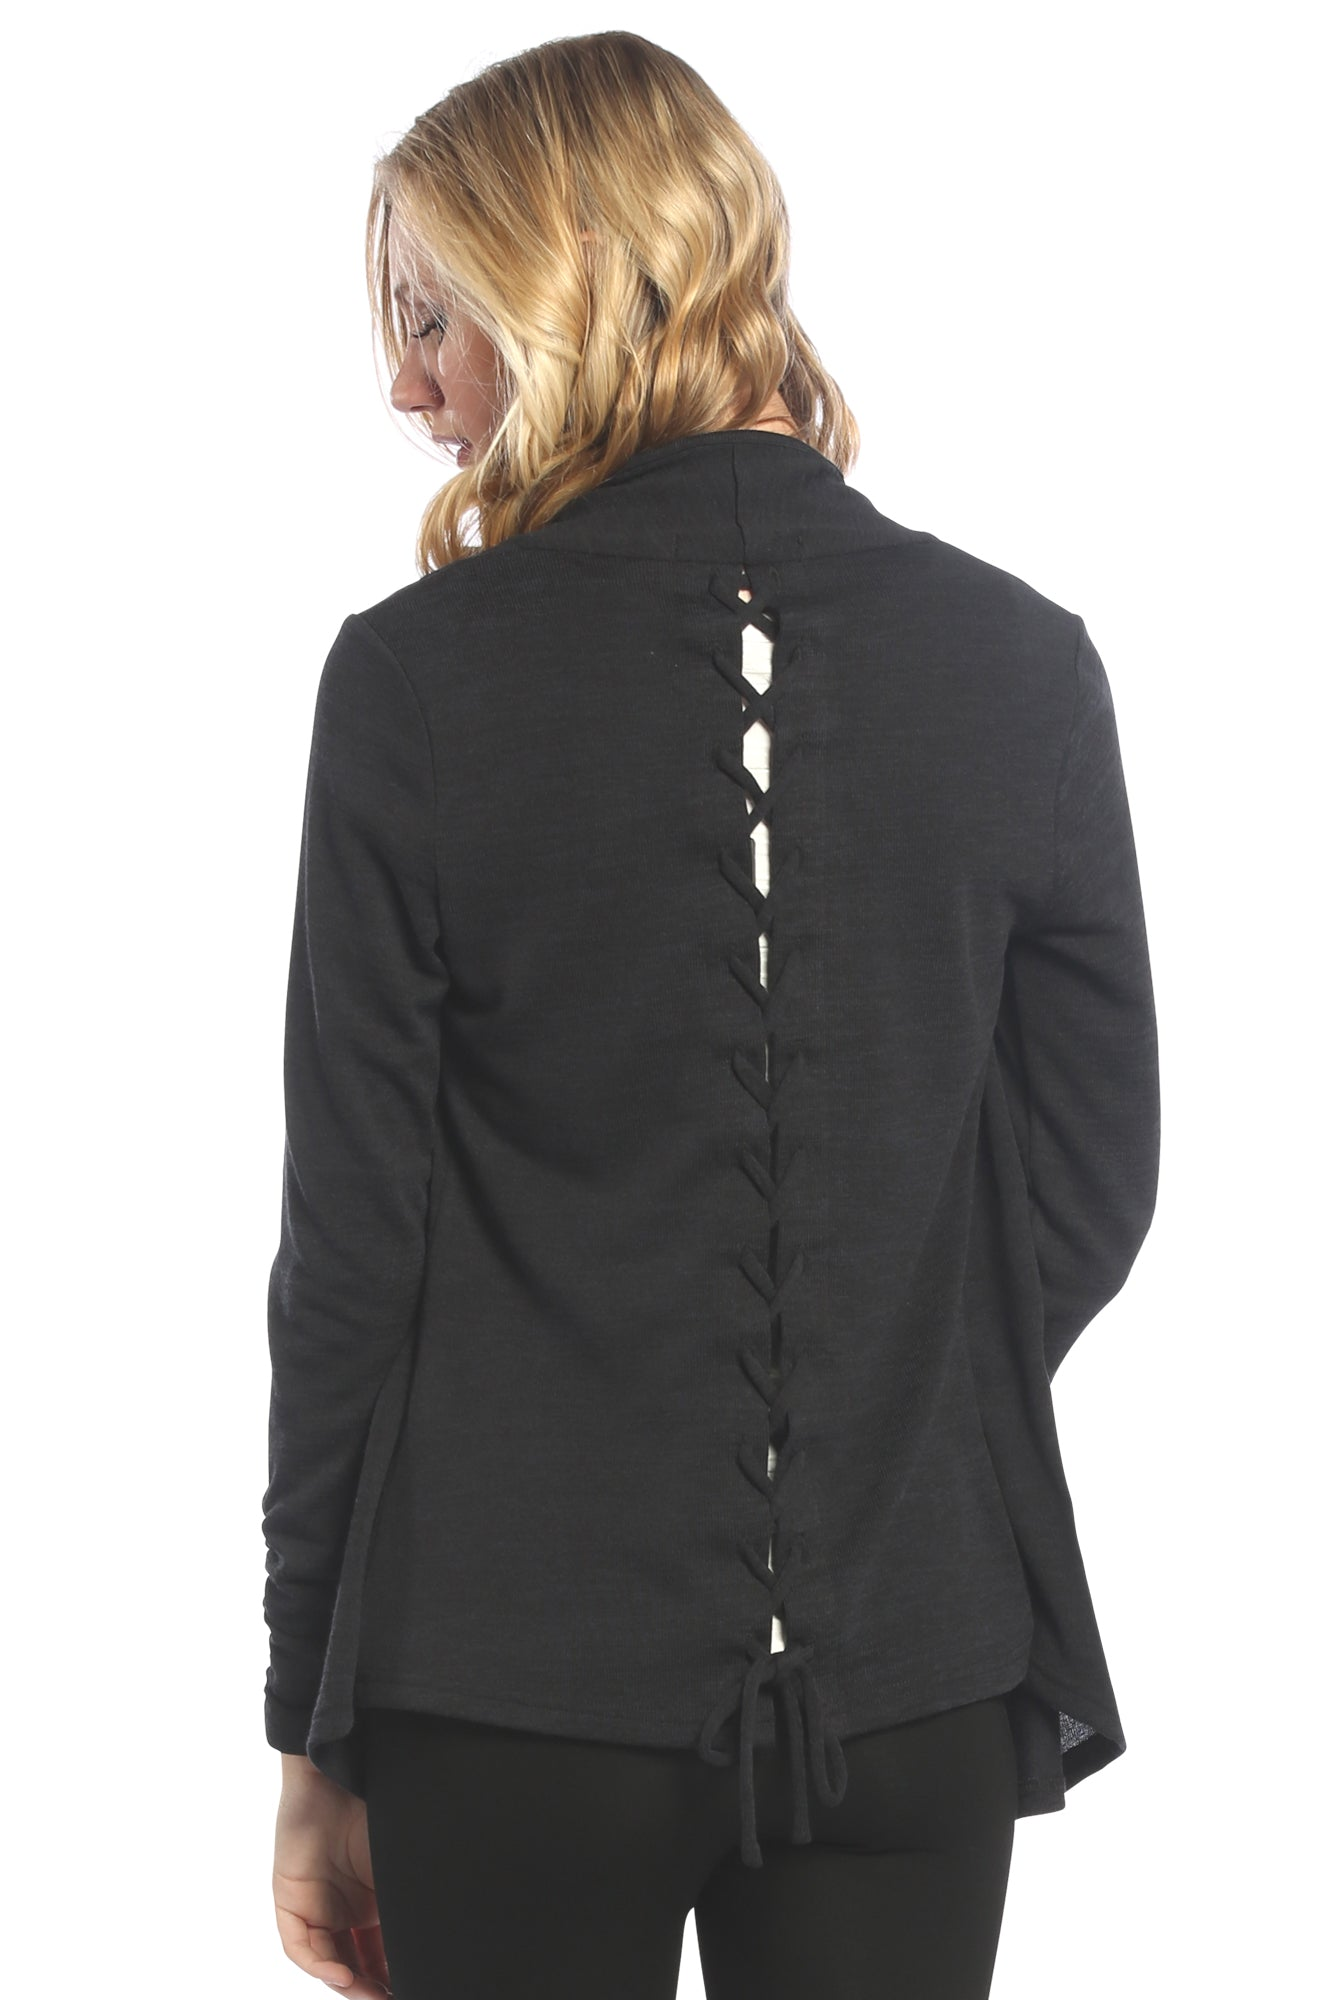 Braided Back Cardigan in Black